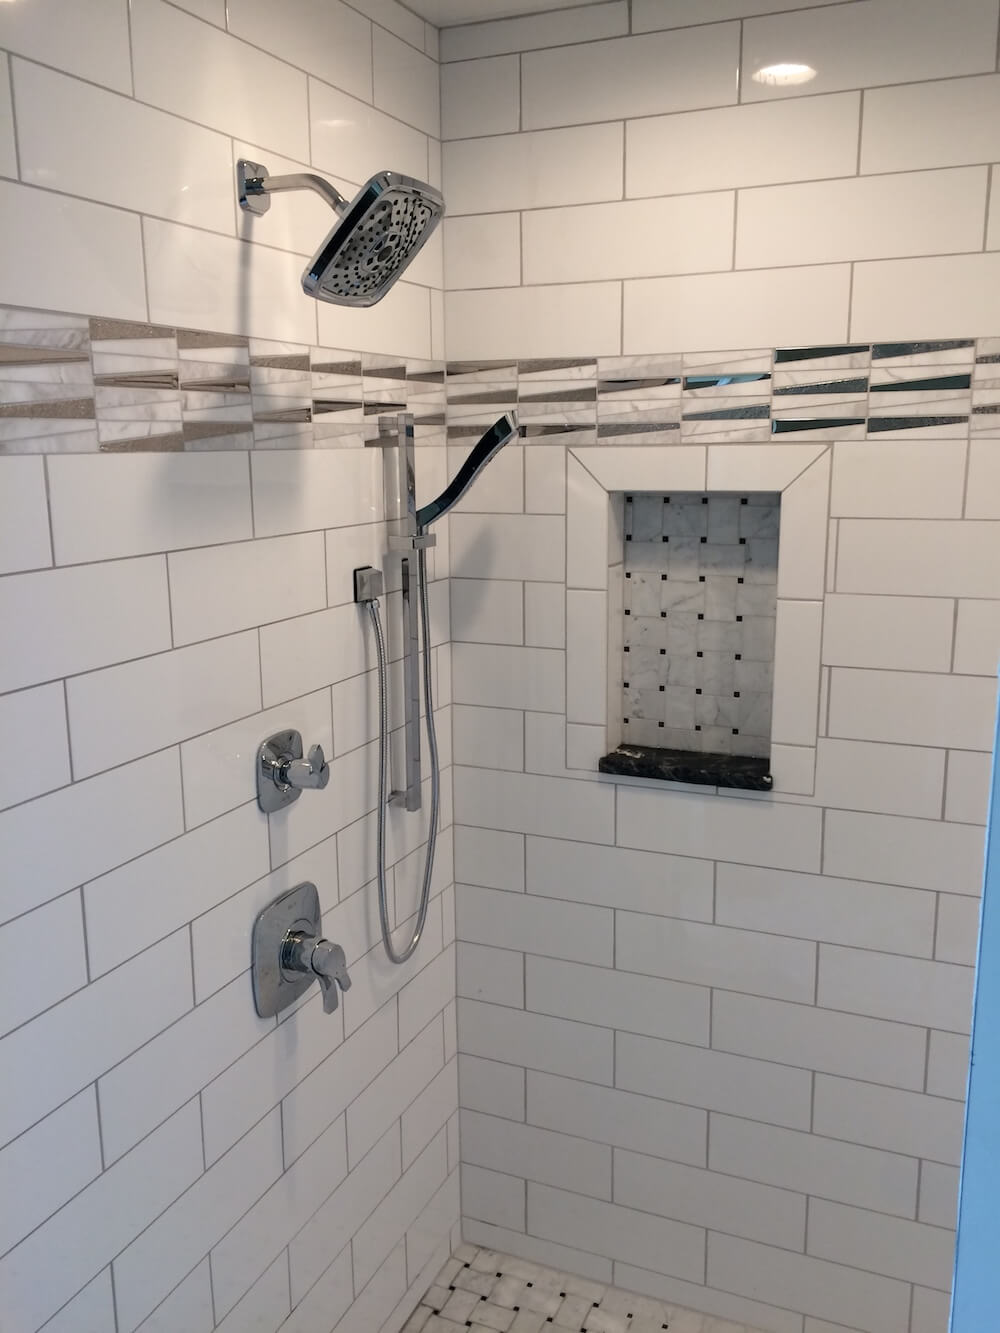 2017 Regrouting Shower Tile Cost Regrout Shower Price